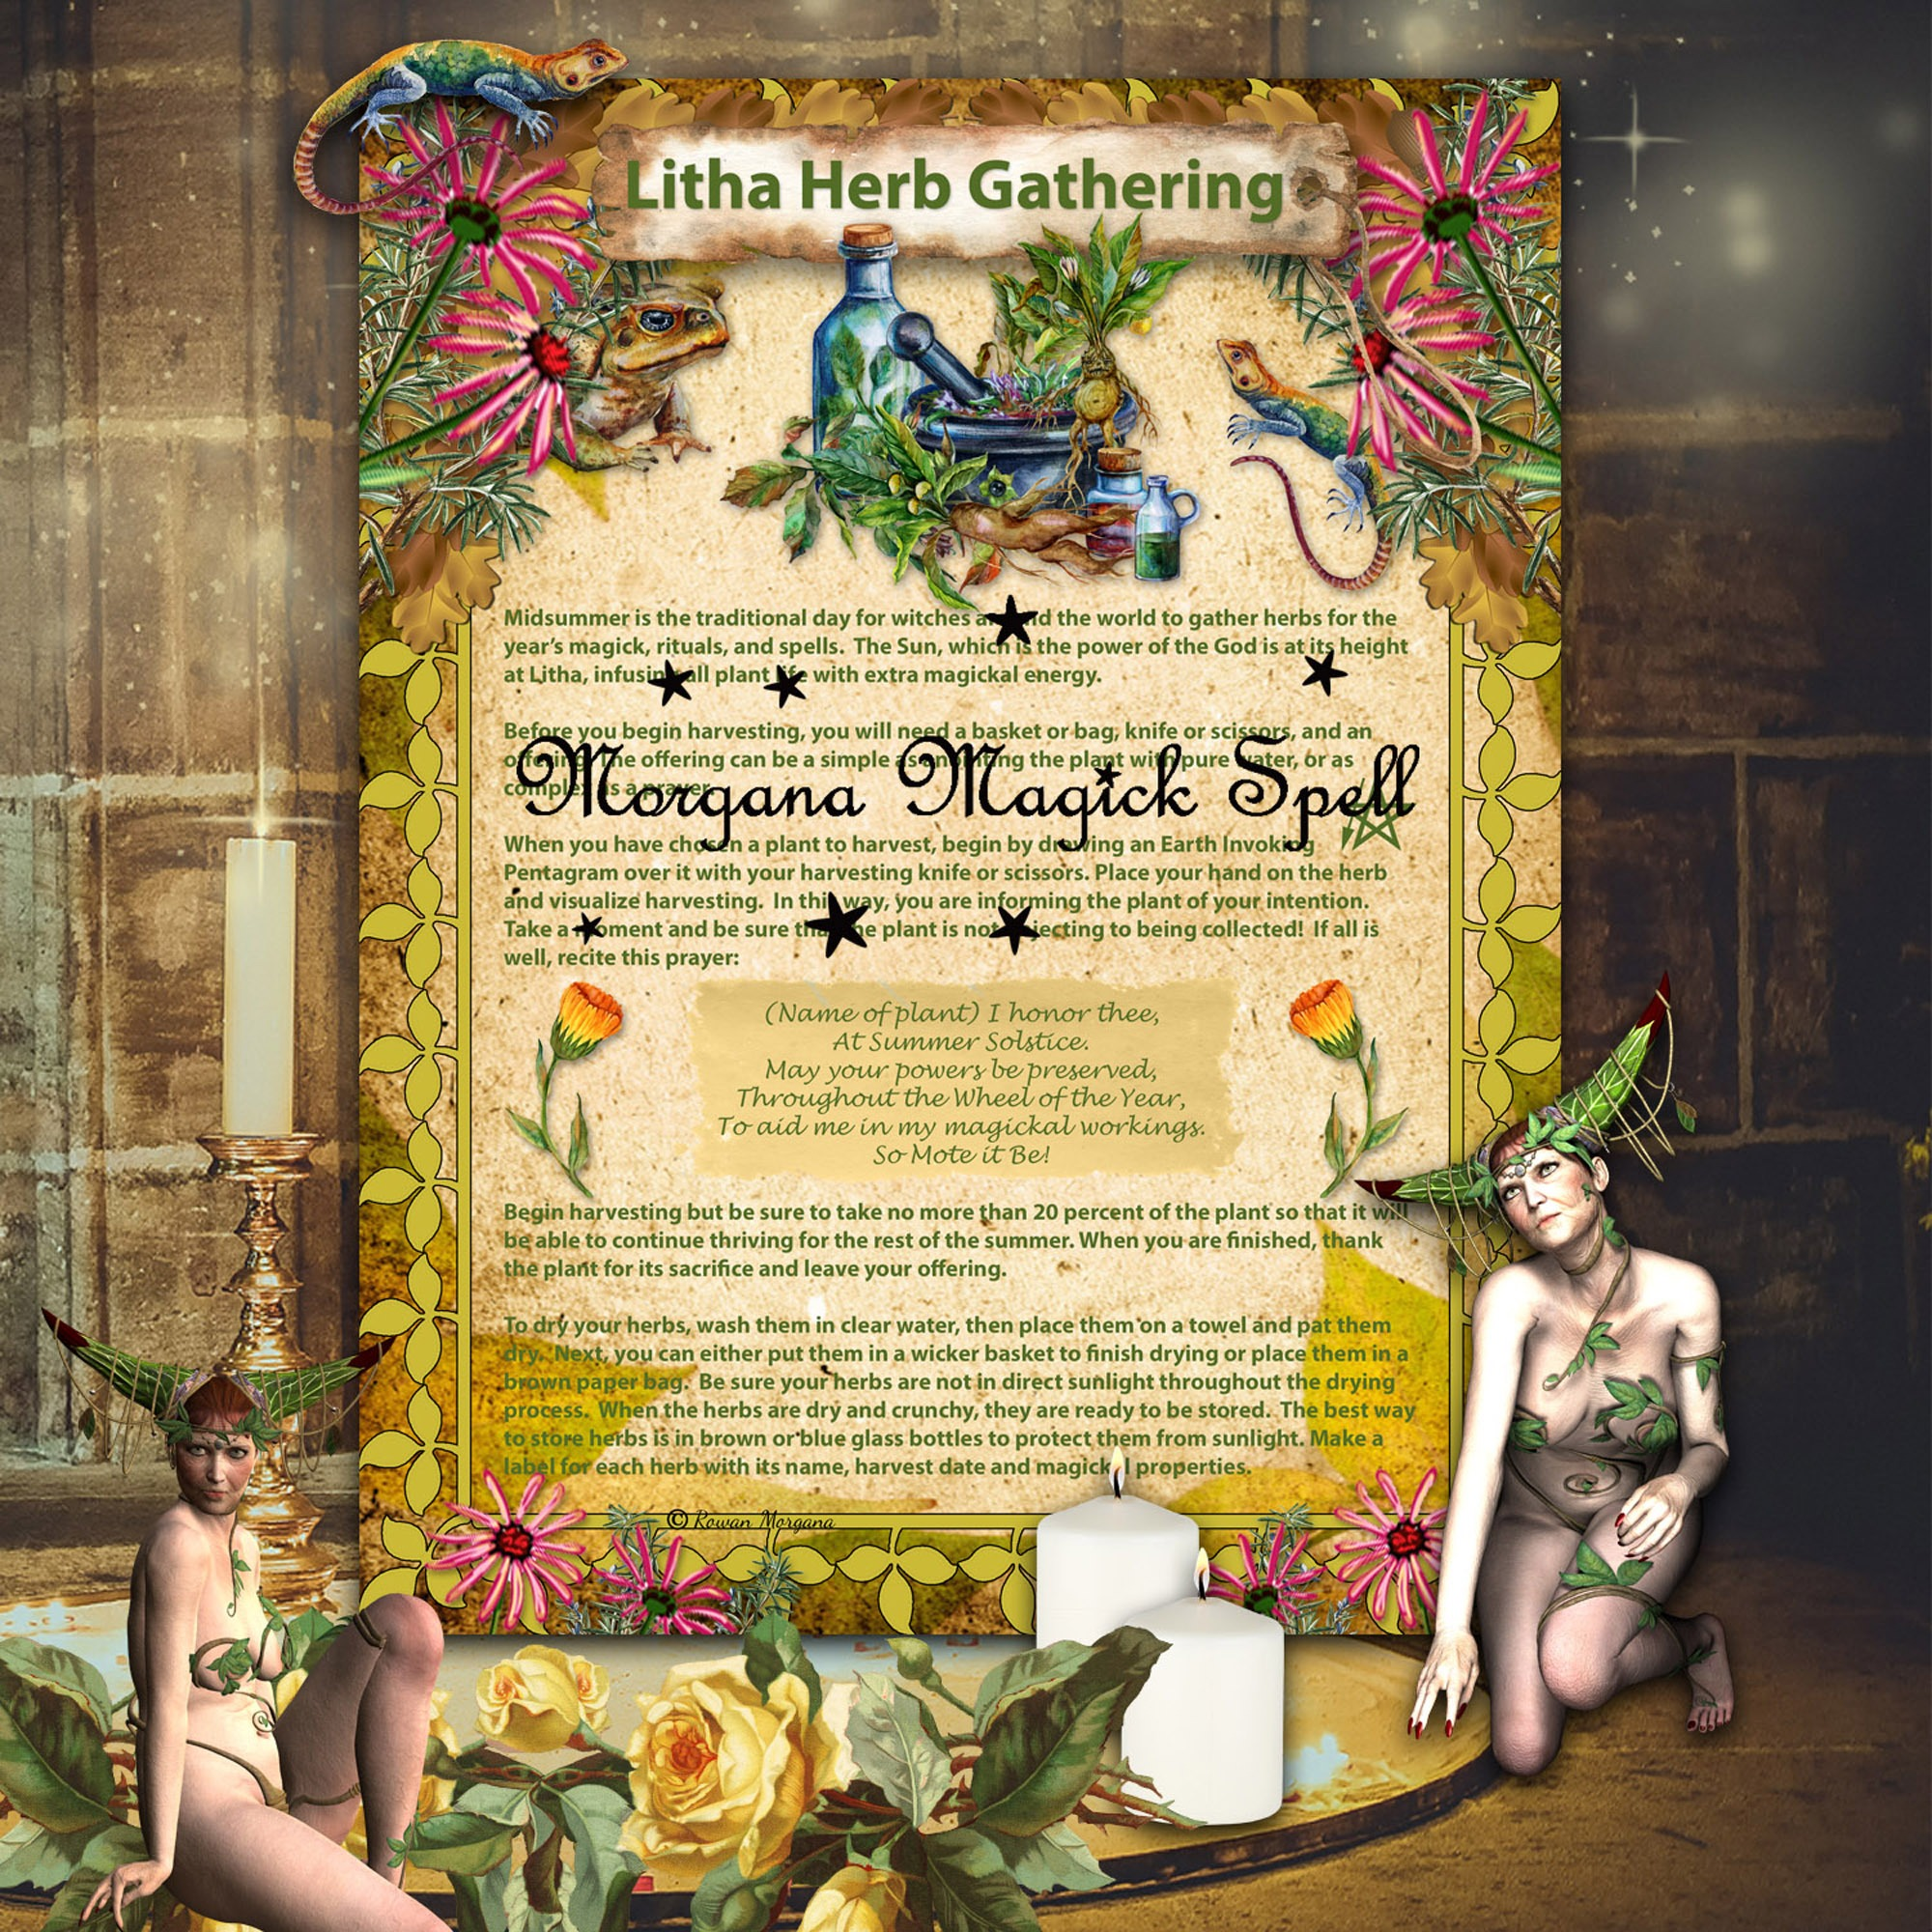 LITHA HERB GATHERING